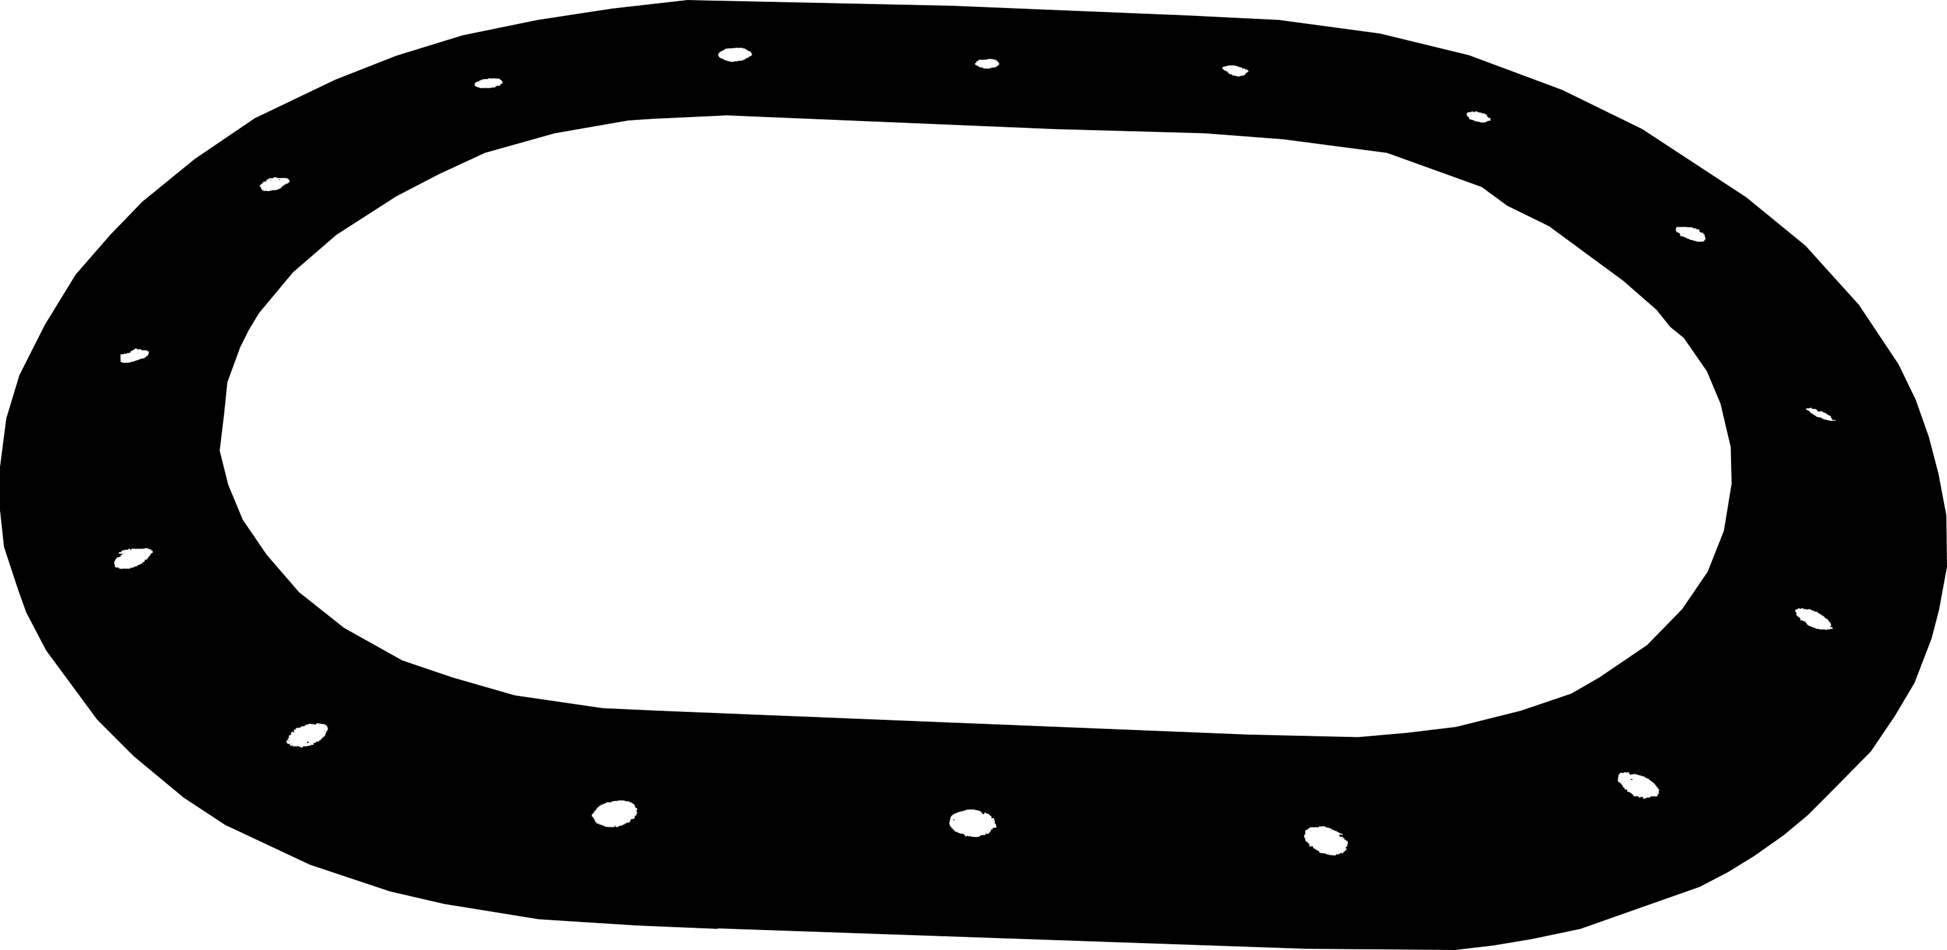 Rci Gasket Oval Fill Plate 16-Hole for C/T Cells